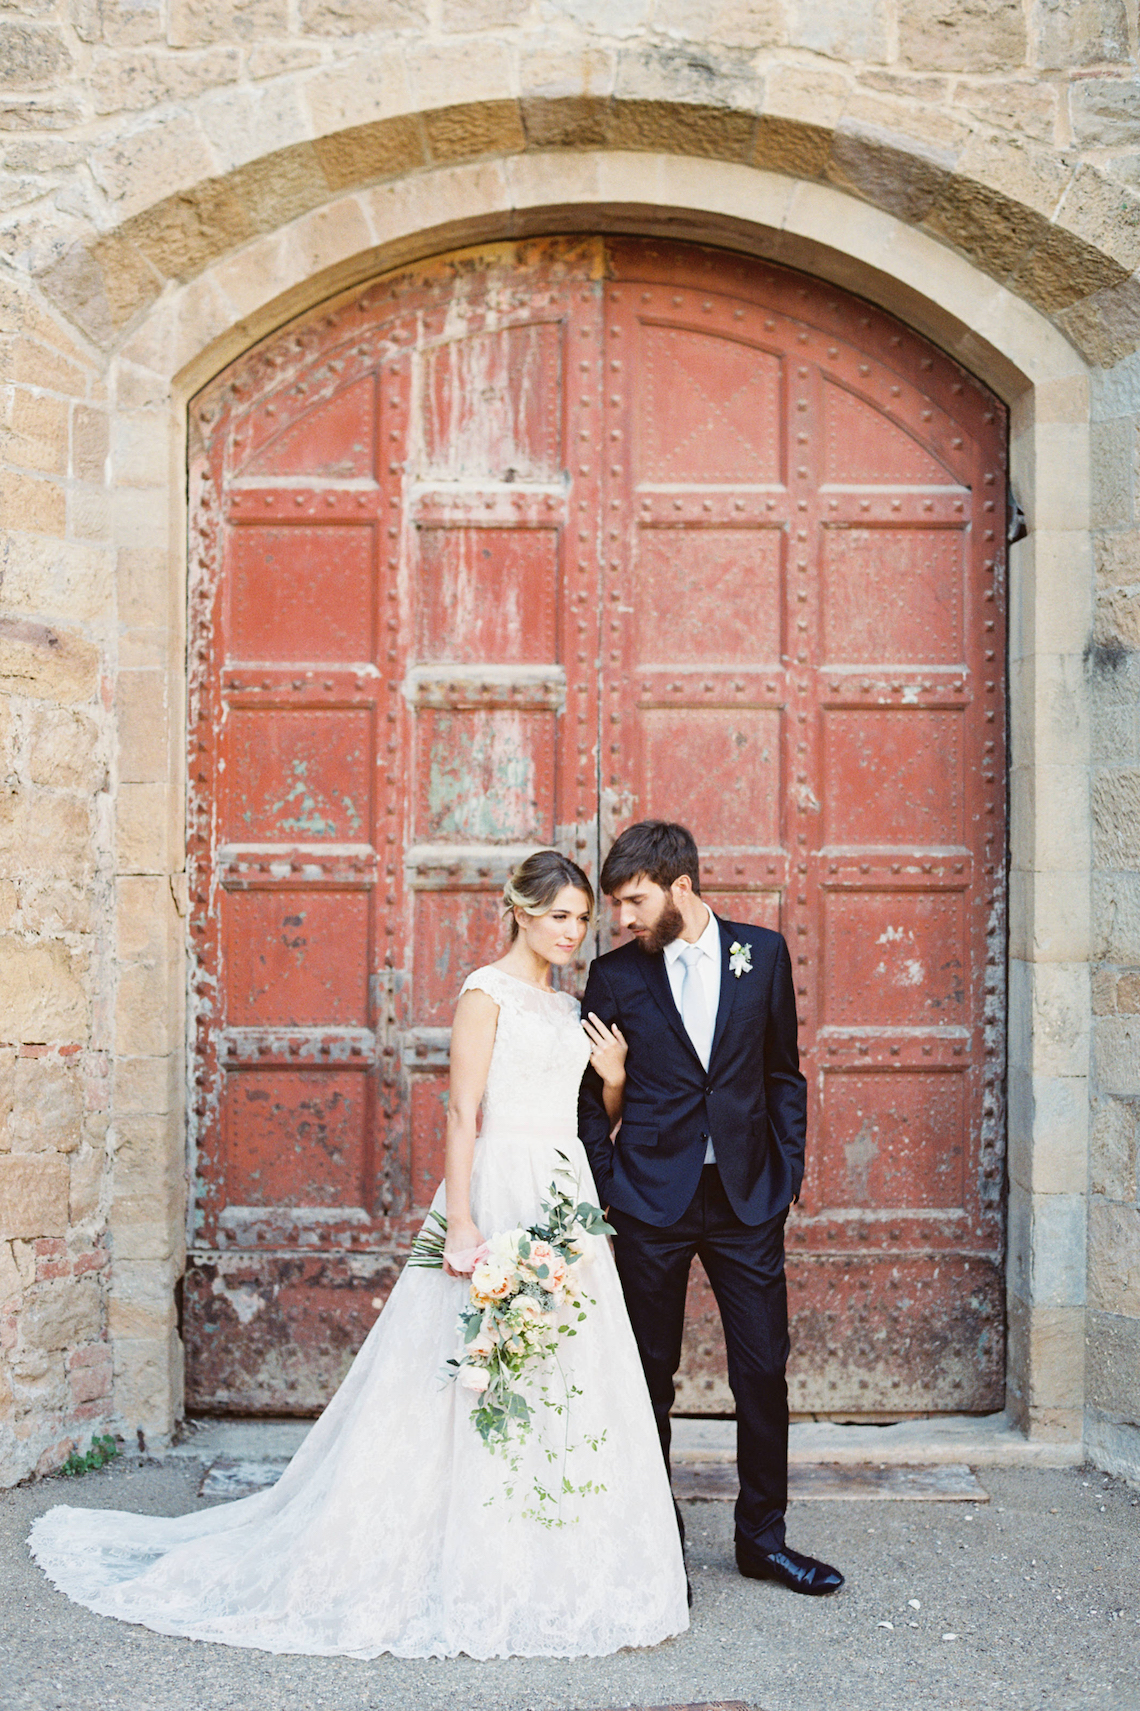 Romantic Italian Countryside Wedding Inspiration | Adrian Wood Photography 32